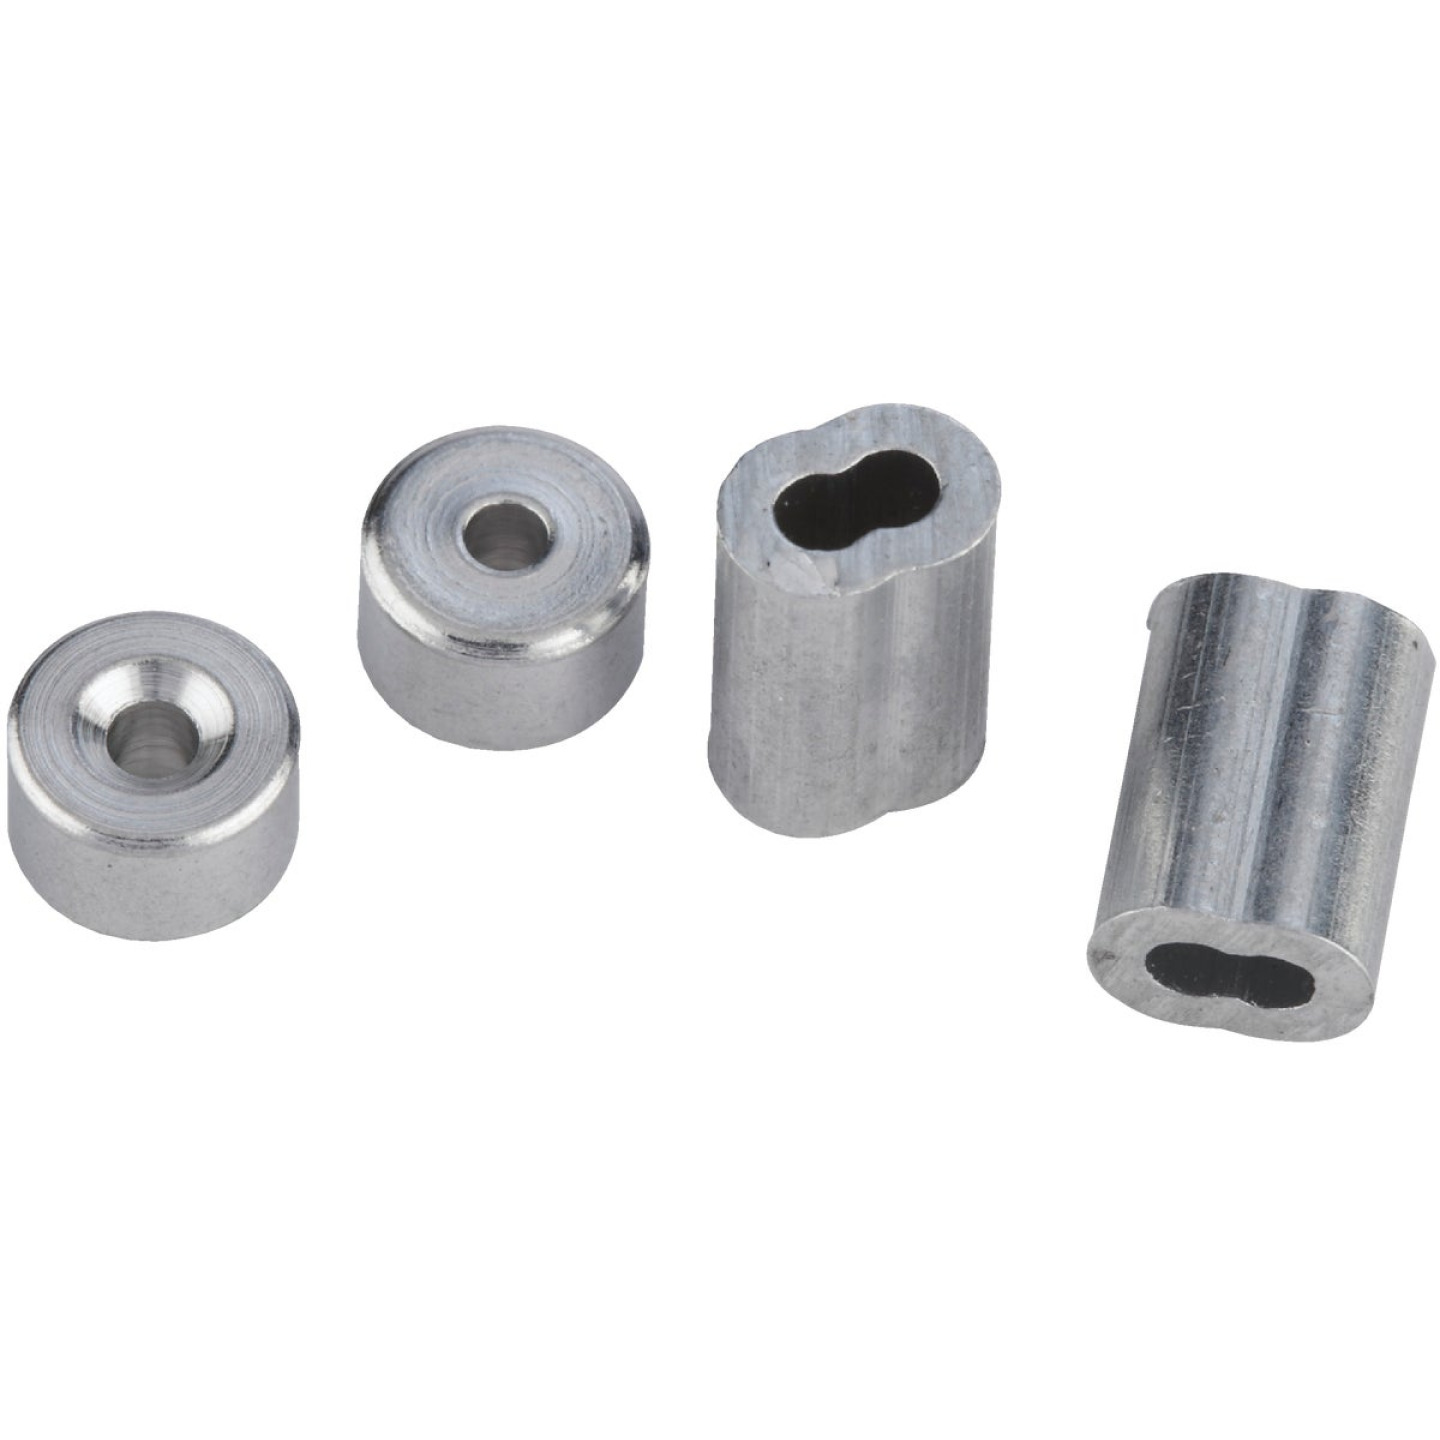 National 5/32 In. Aluminum Garage Door Ferrule & Stop Kit Image 3